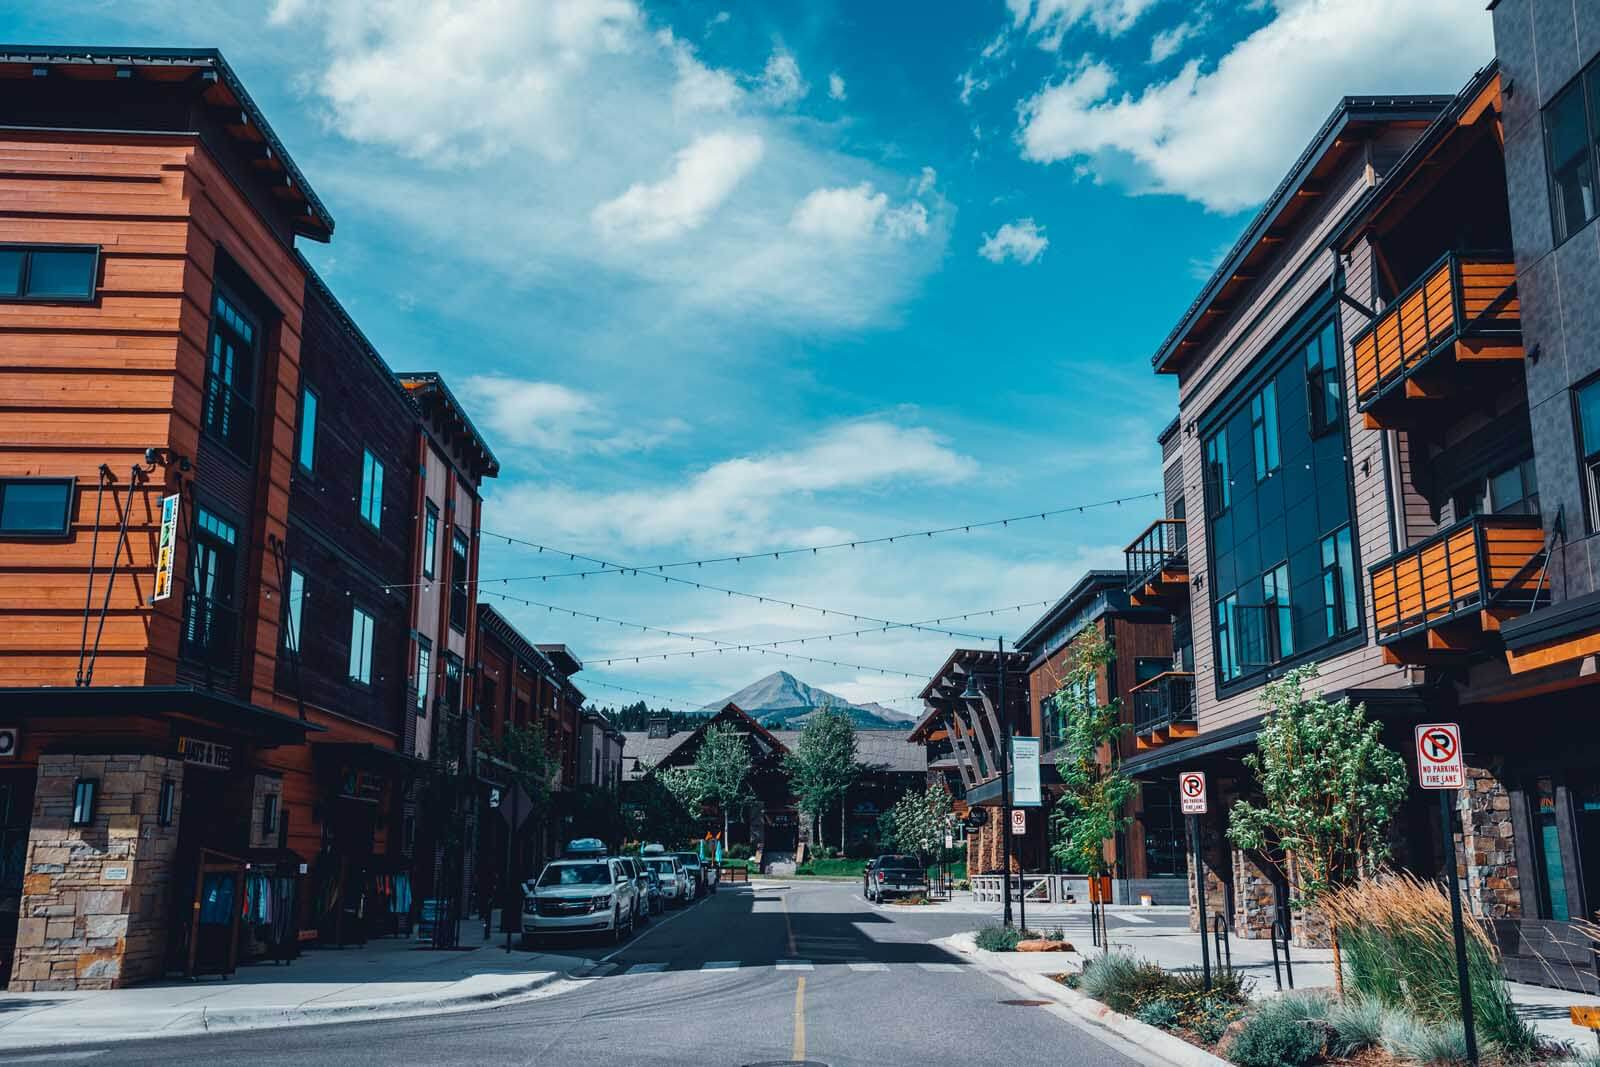 Downtown Big Sky in Montana